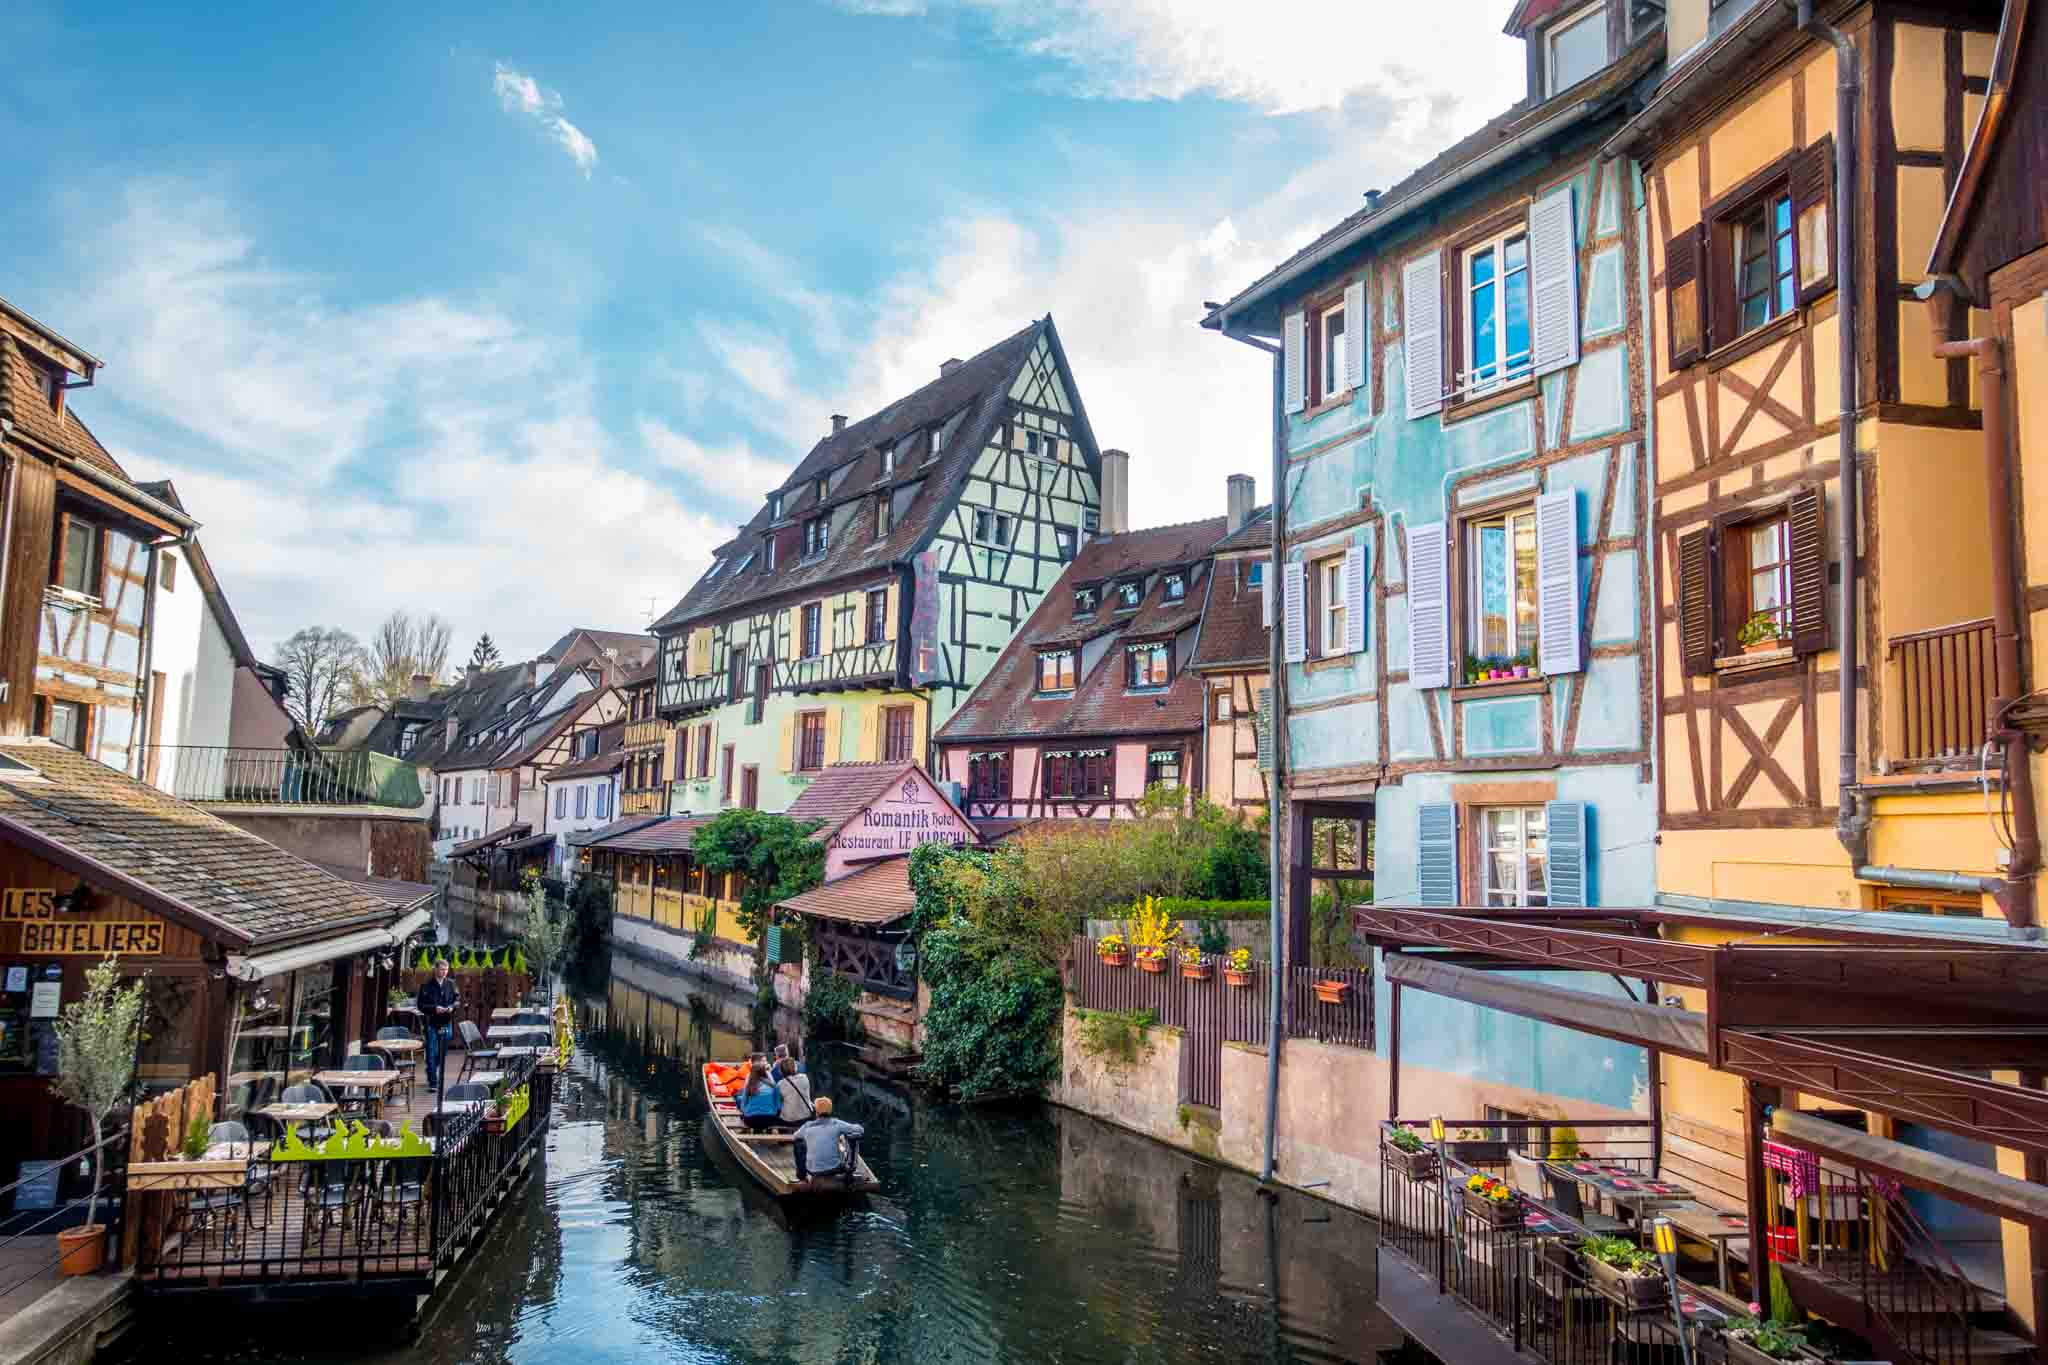 People in boat in a river passing by colorful buildings in Petite Venise in Colmar